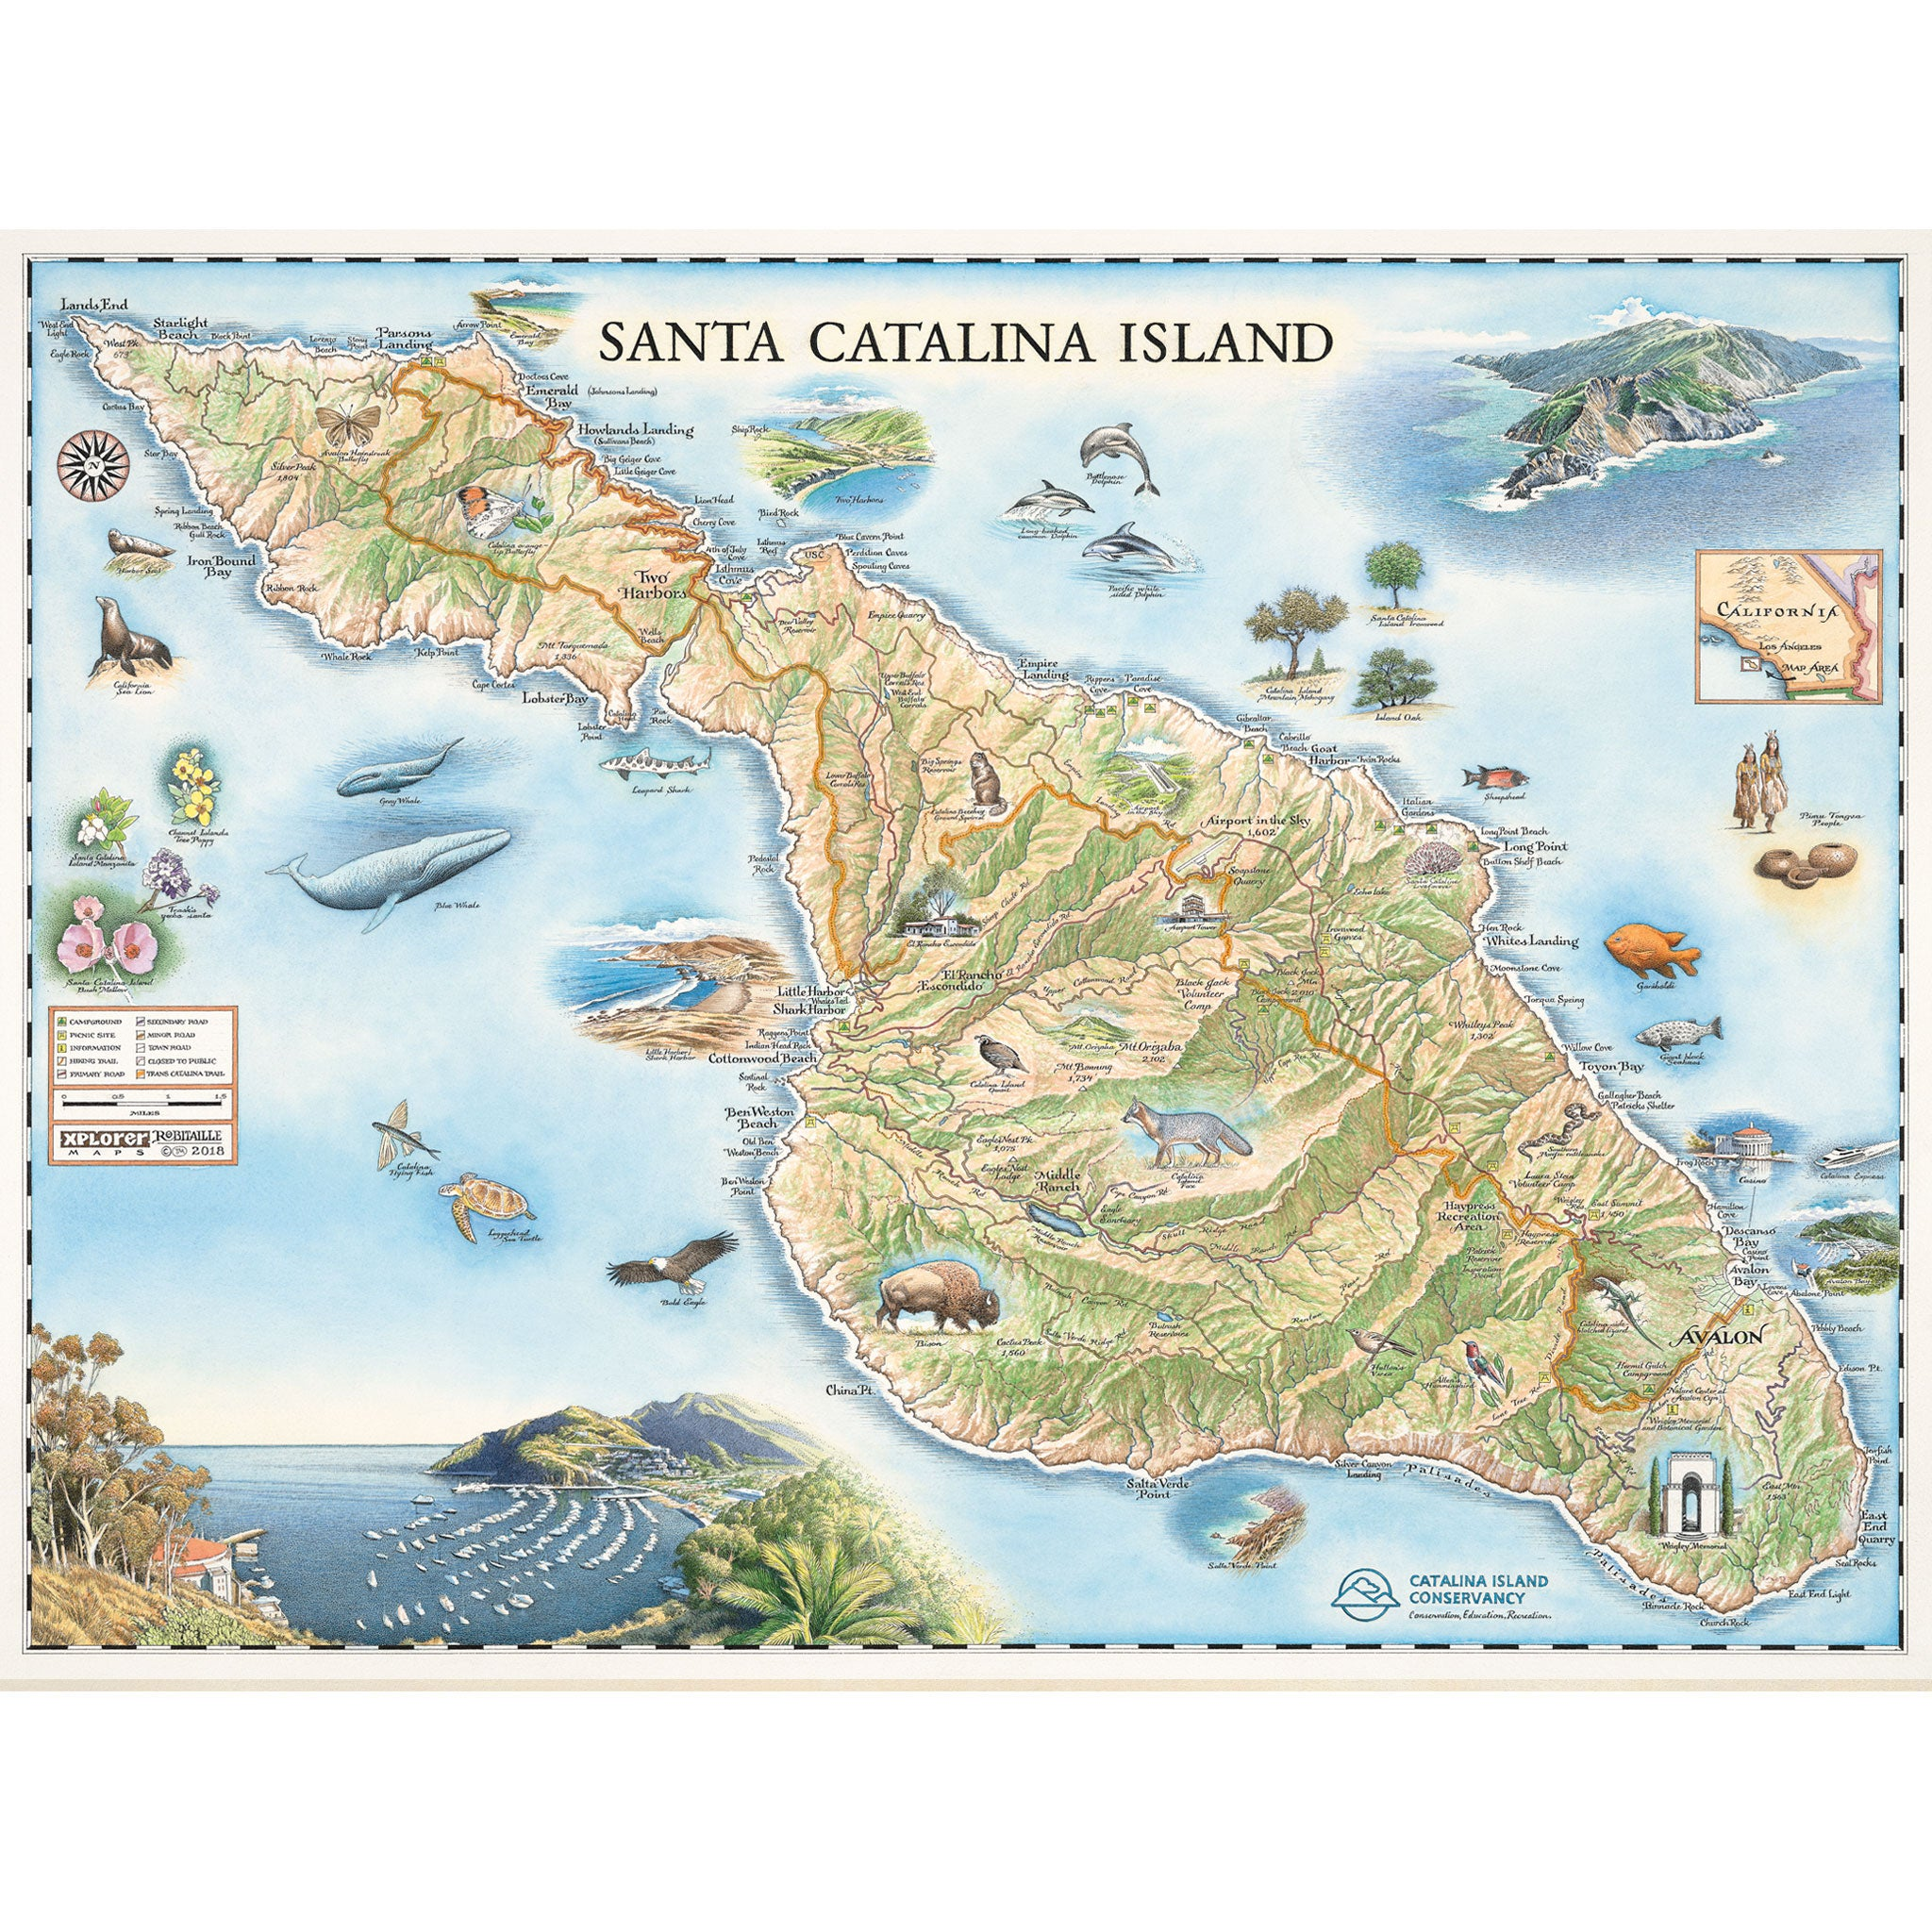 Santa Catalina Island Map on solvang ca map, california missions map, north county california map, sports map, downtown solvang map, county plat map, watercolor resort map, pleasanton california map, last chance canyon trail map, jefferson new hampshire map, north pole map, bunny map, paul map, mermaid map, baseball map, monterey ca map, jesus map, historic philadelphia map, solvang wineries map, police map,